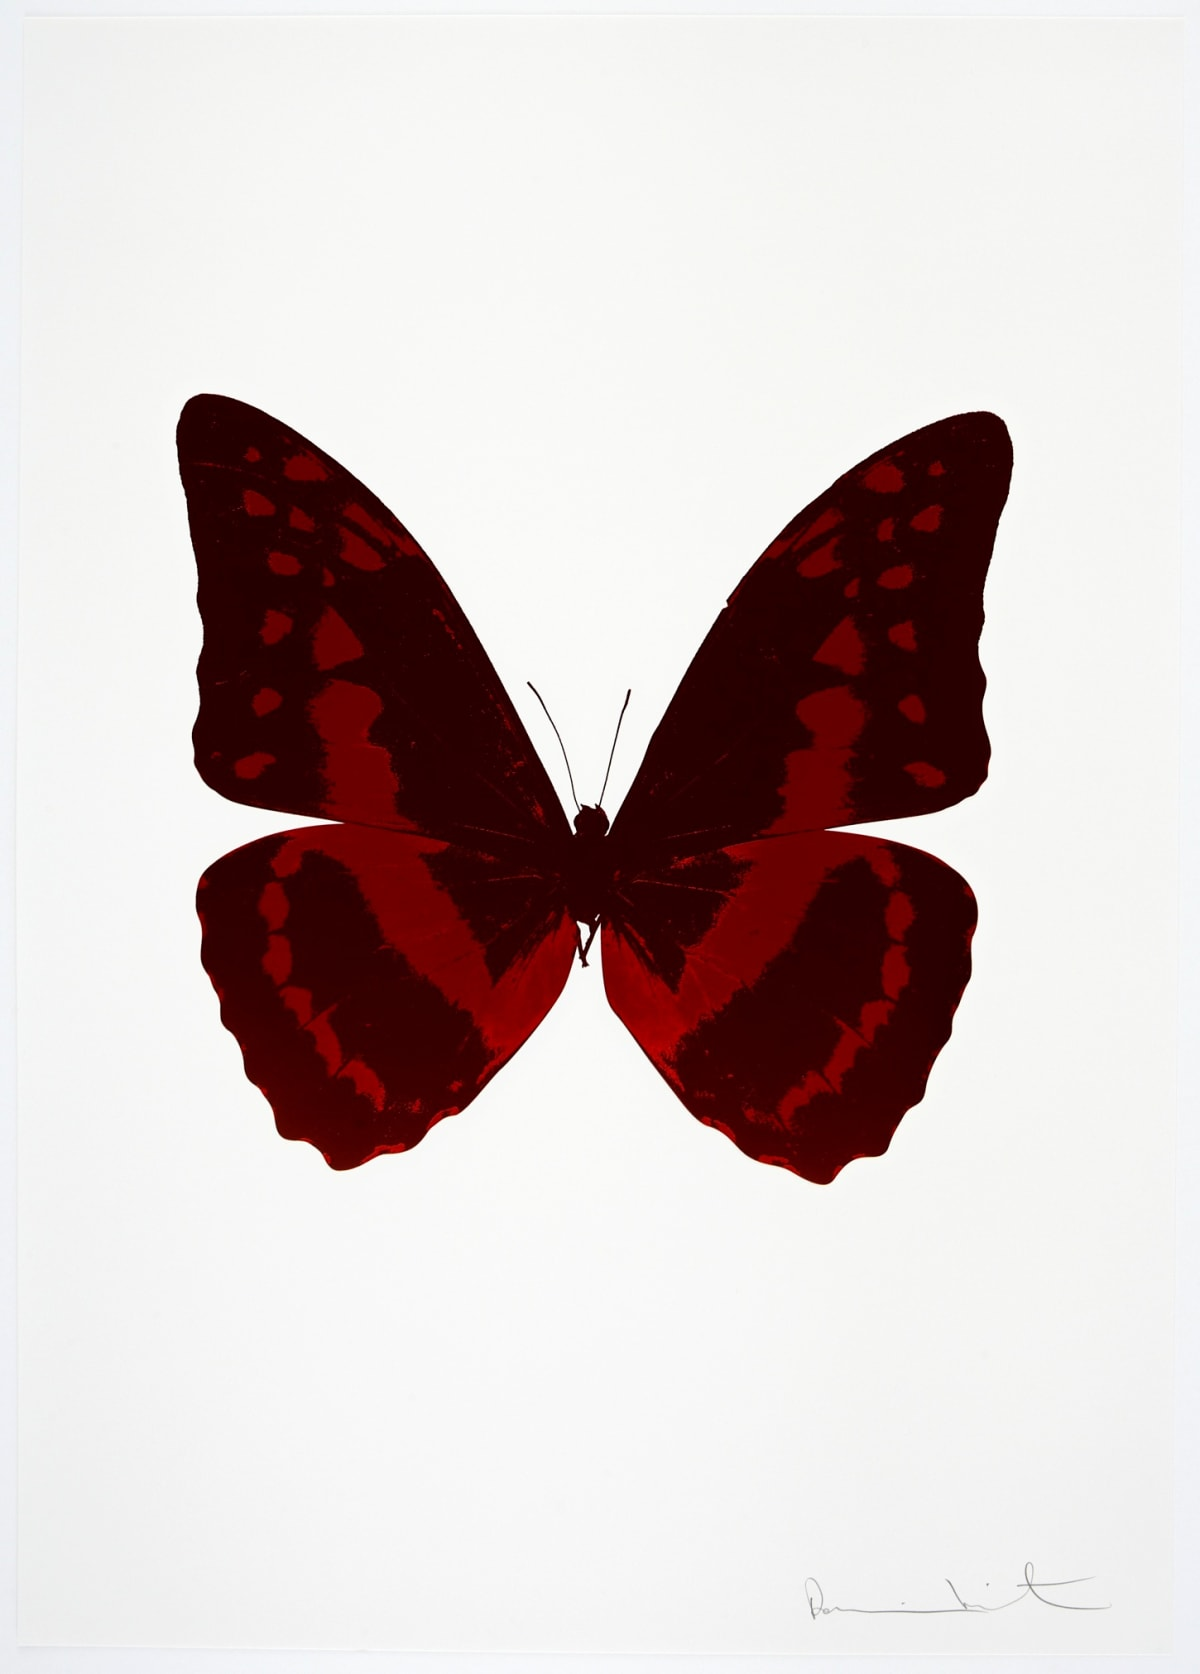 Damien Hirst The Souls III - Burgundy/Chilli Red, 2010 2 colour foil block on 300gsm Arches 88 archival paper. Signed and numbered. Published by Paul Stolper and Other Criteria 72 x 51cm OC7929 / 660-32 Edition of 15